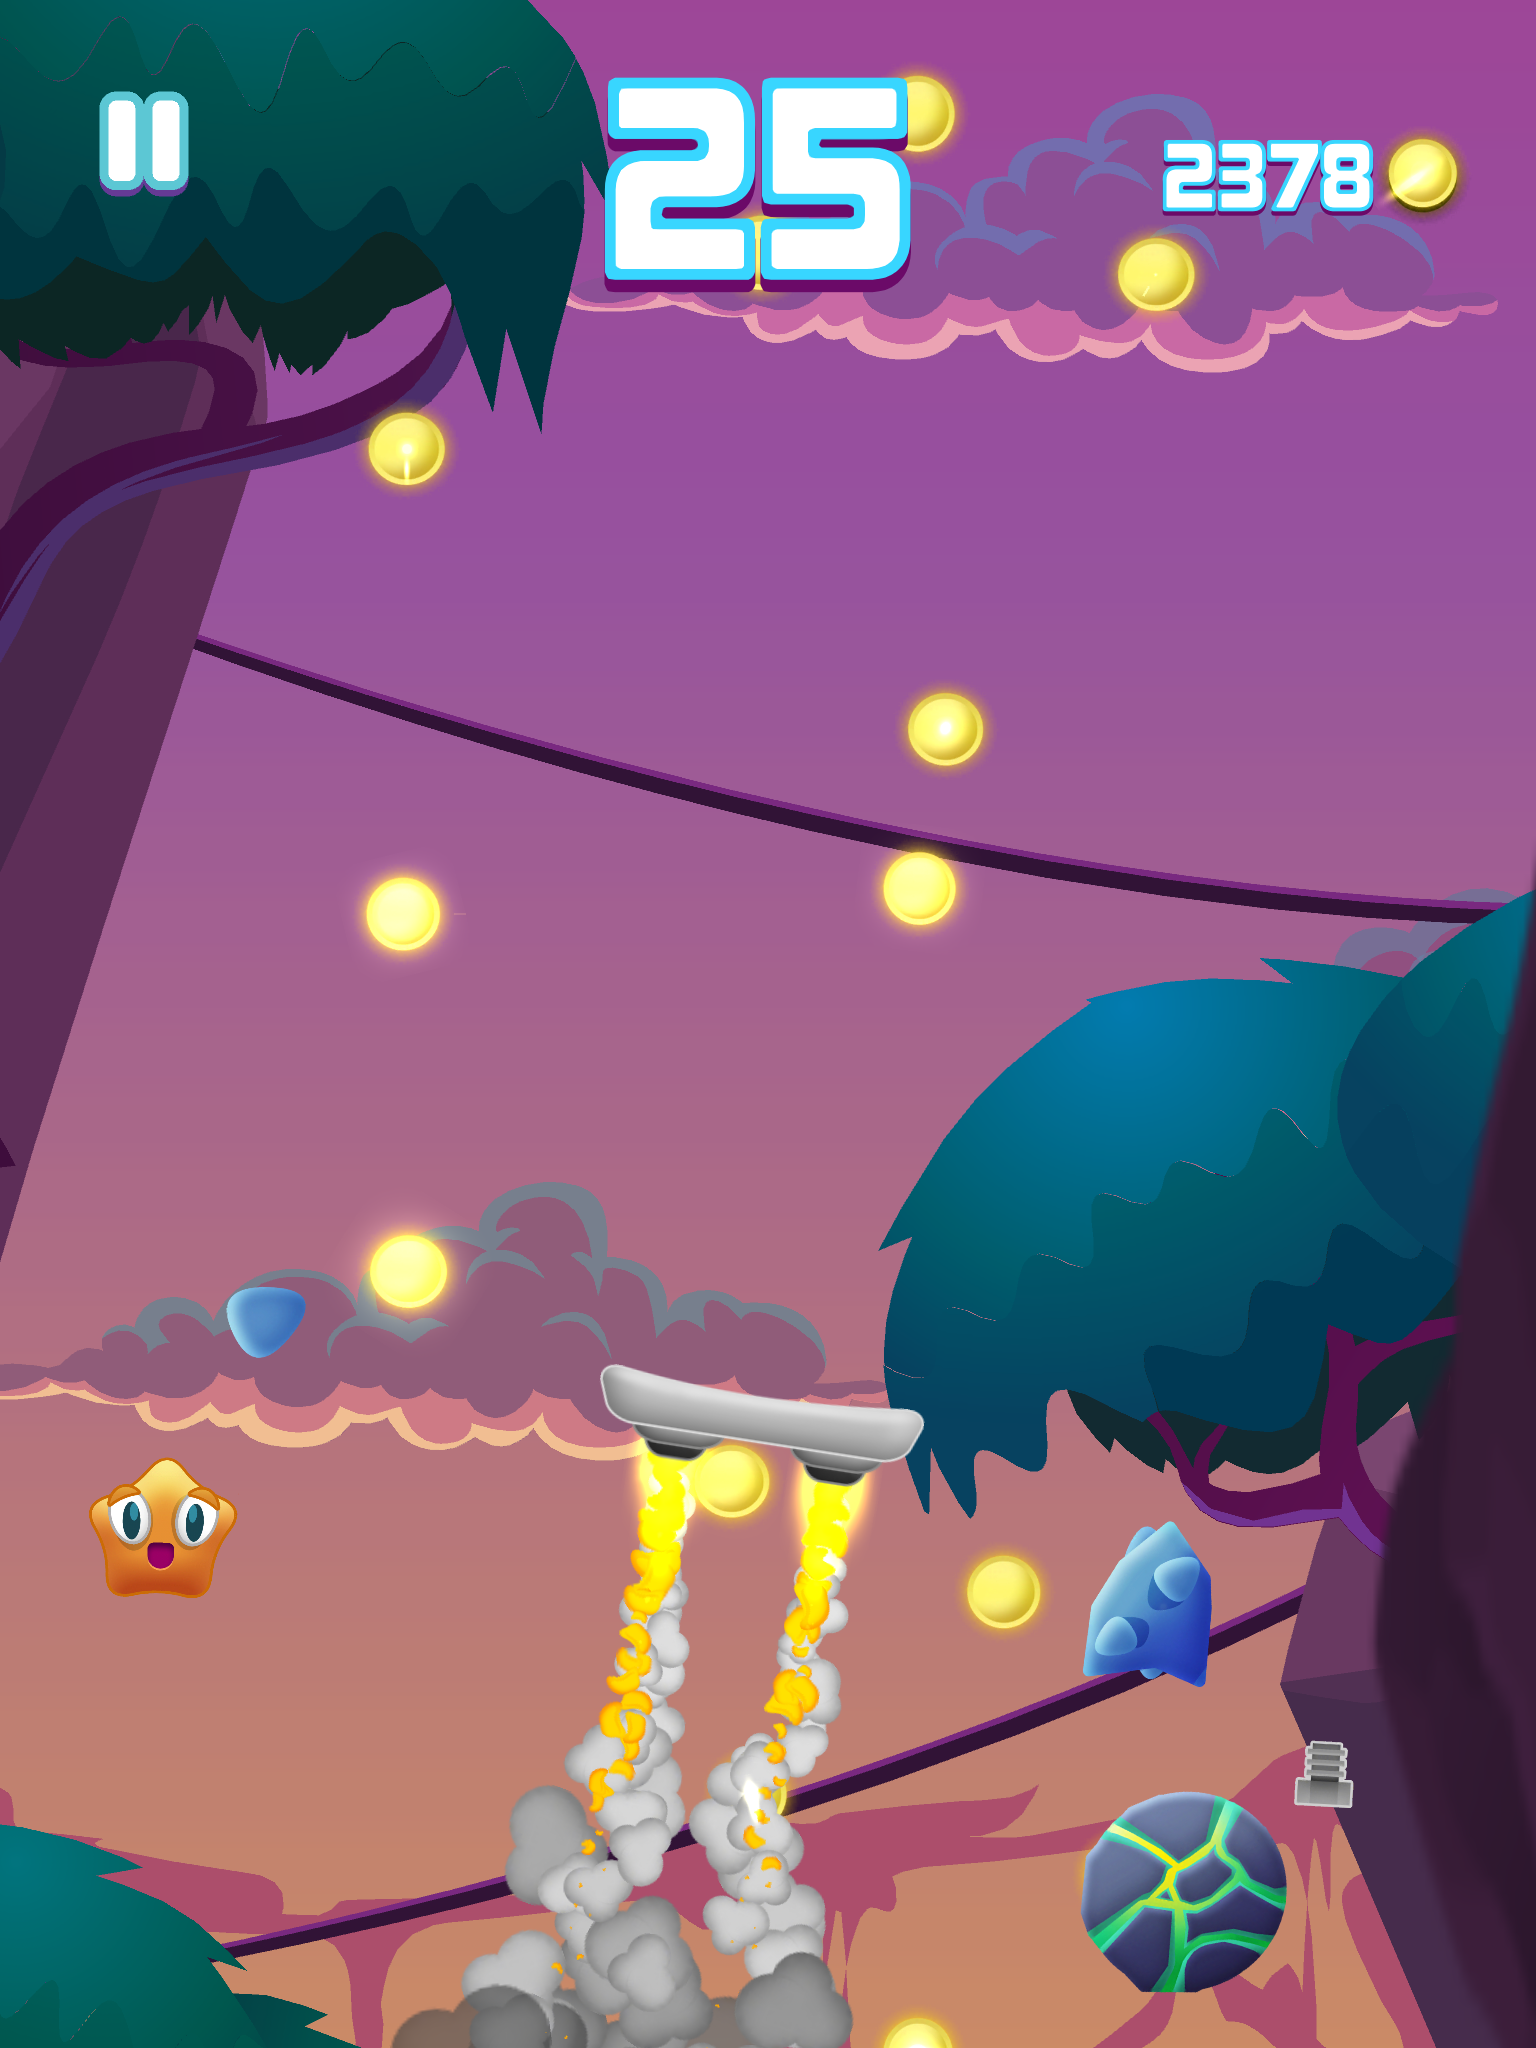 Wobblers review - An arcade game that mixes the subtle and the chaotic